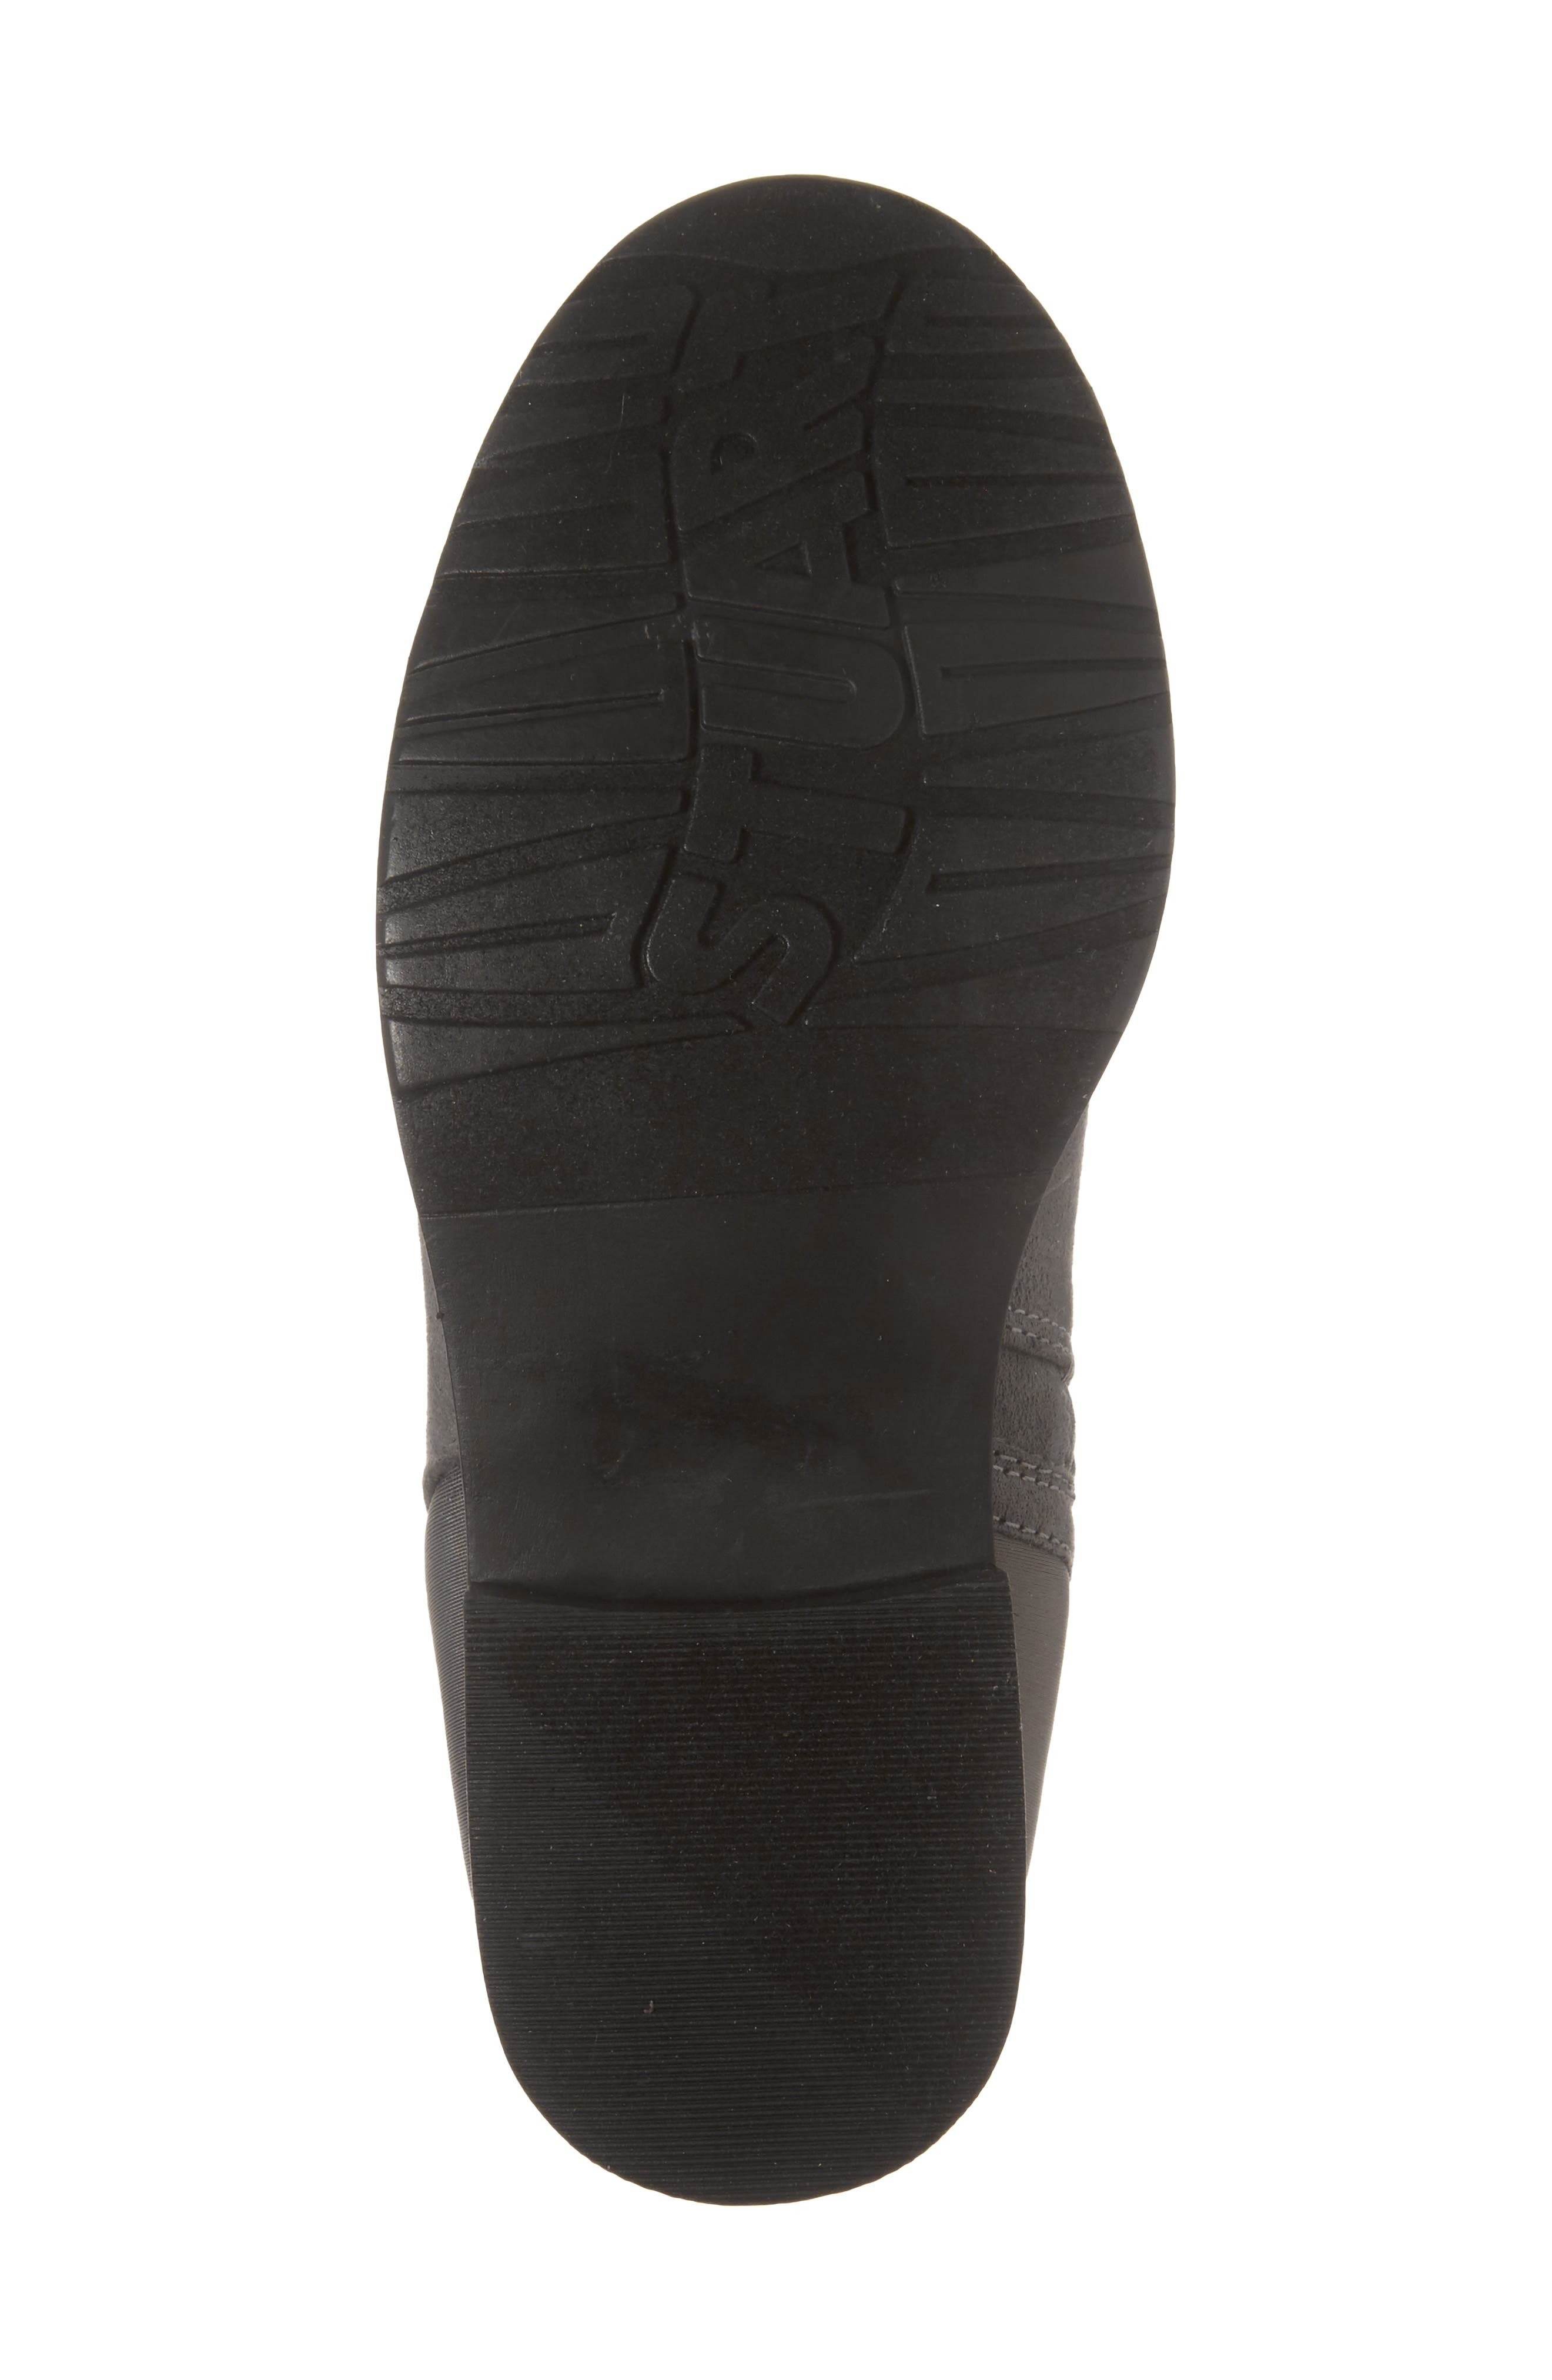 5050 Tall Riding Boot,                             Alternate thumbnail 6, color,                             050